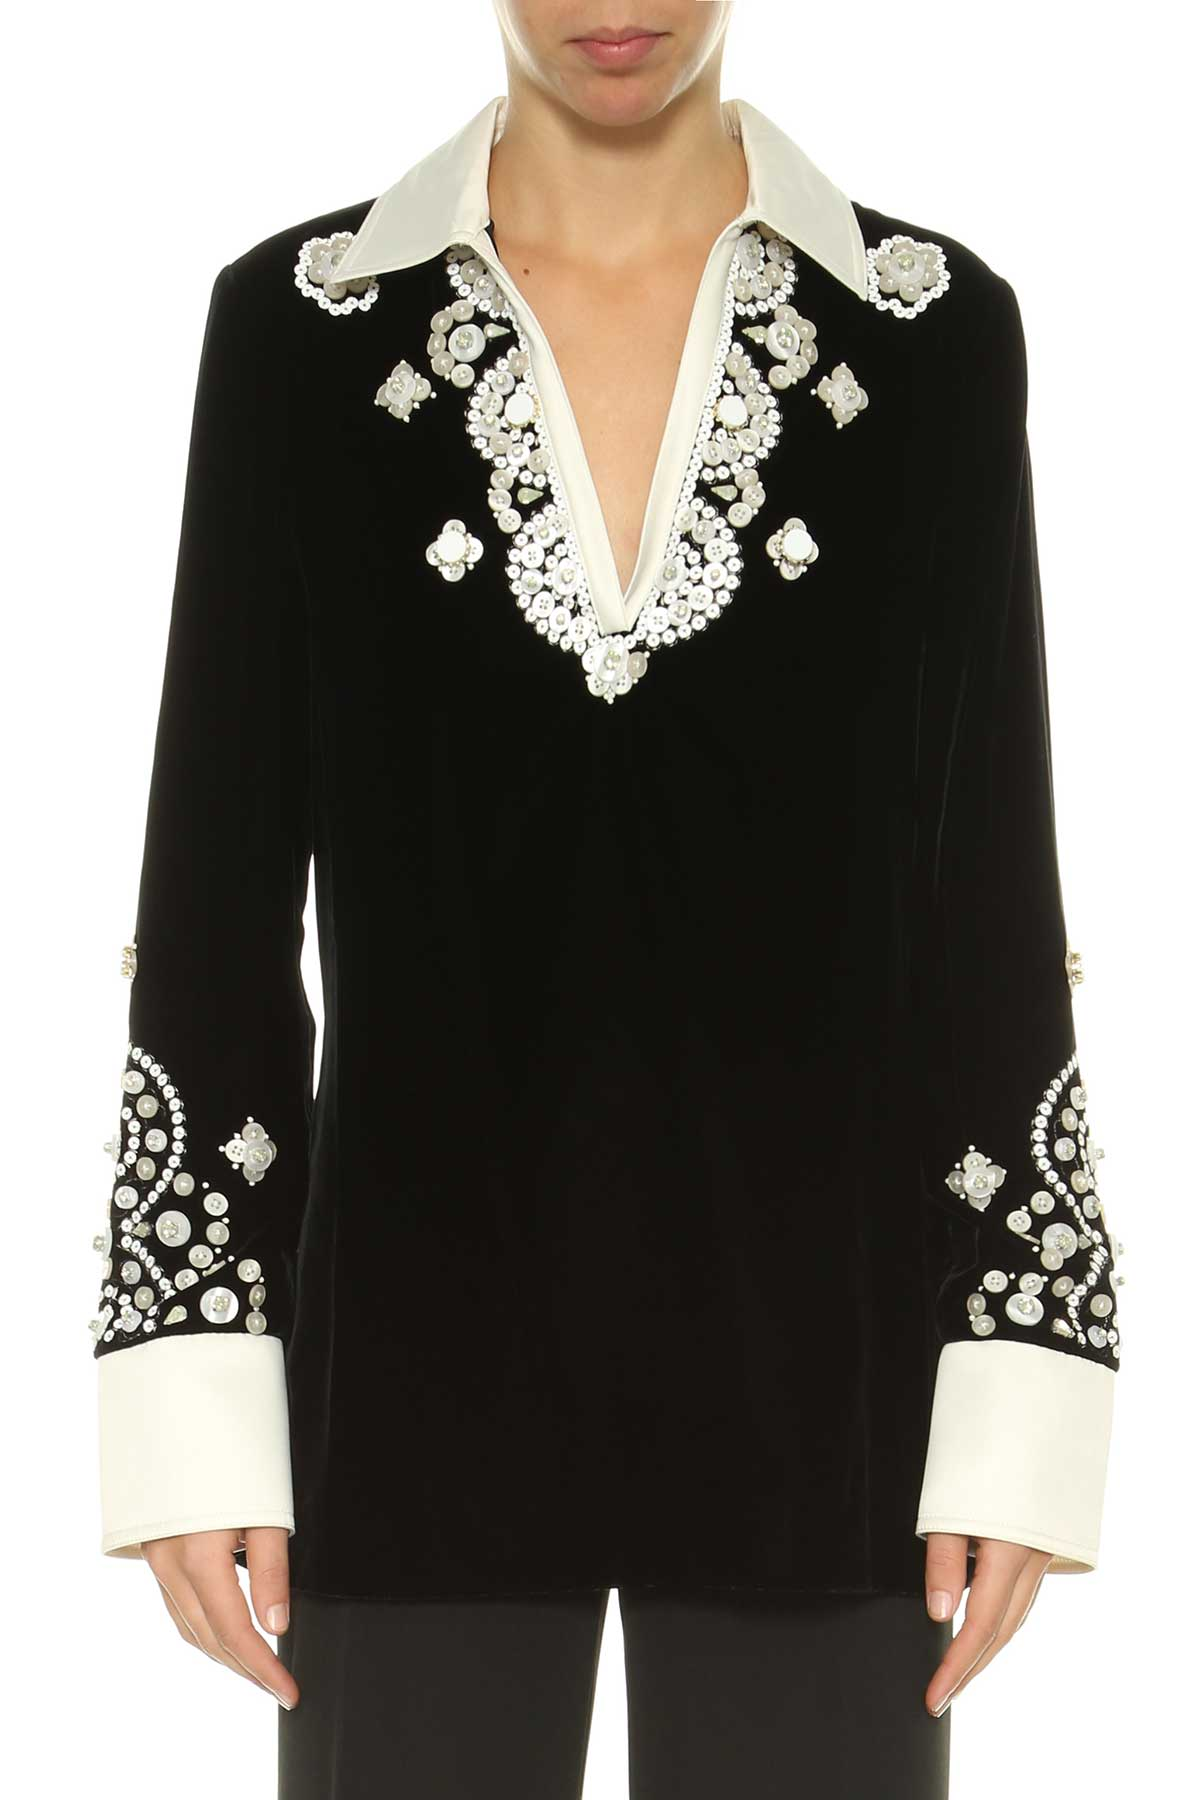 Tory Burch Tory Burch Embroidered Velvet Top